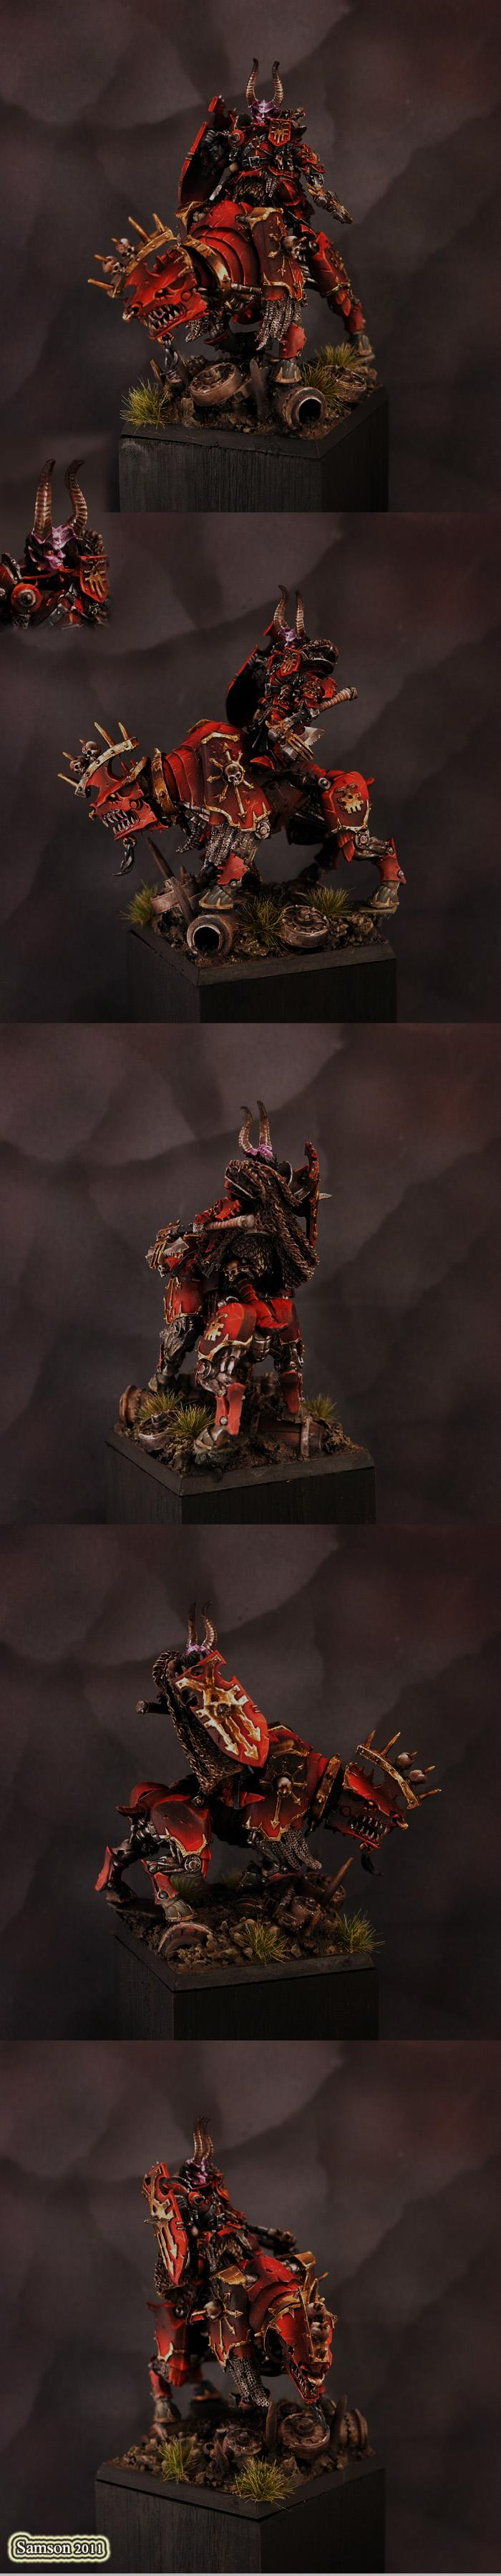 Awesome, Chaos, Chaos Lord, Chaos Warrior, Khorne, Warhammer Fantasy